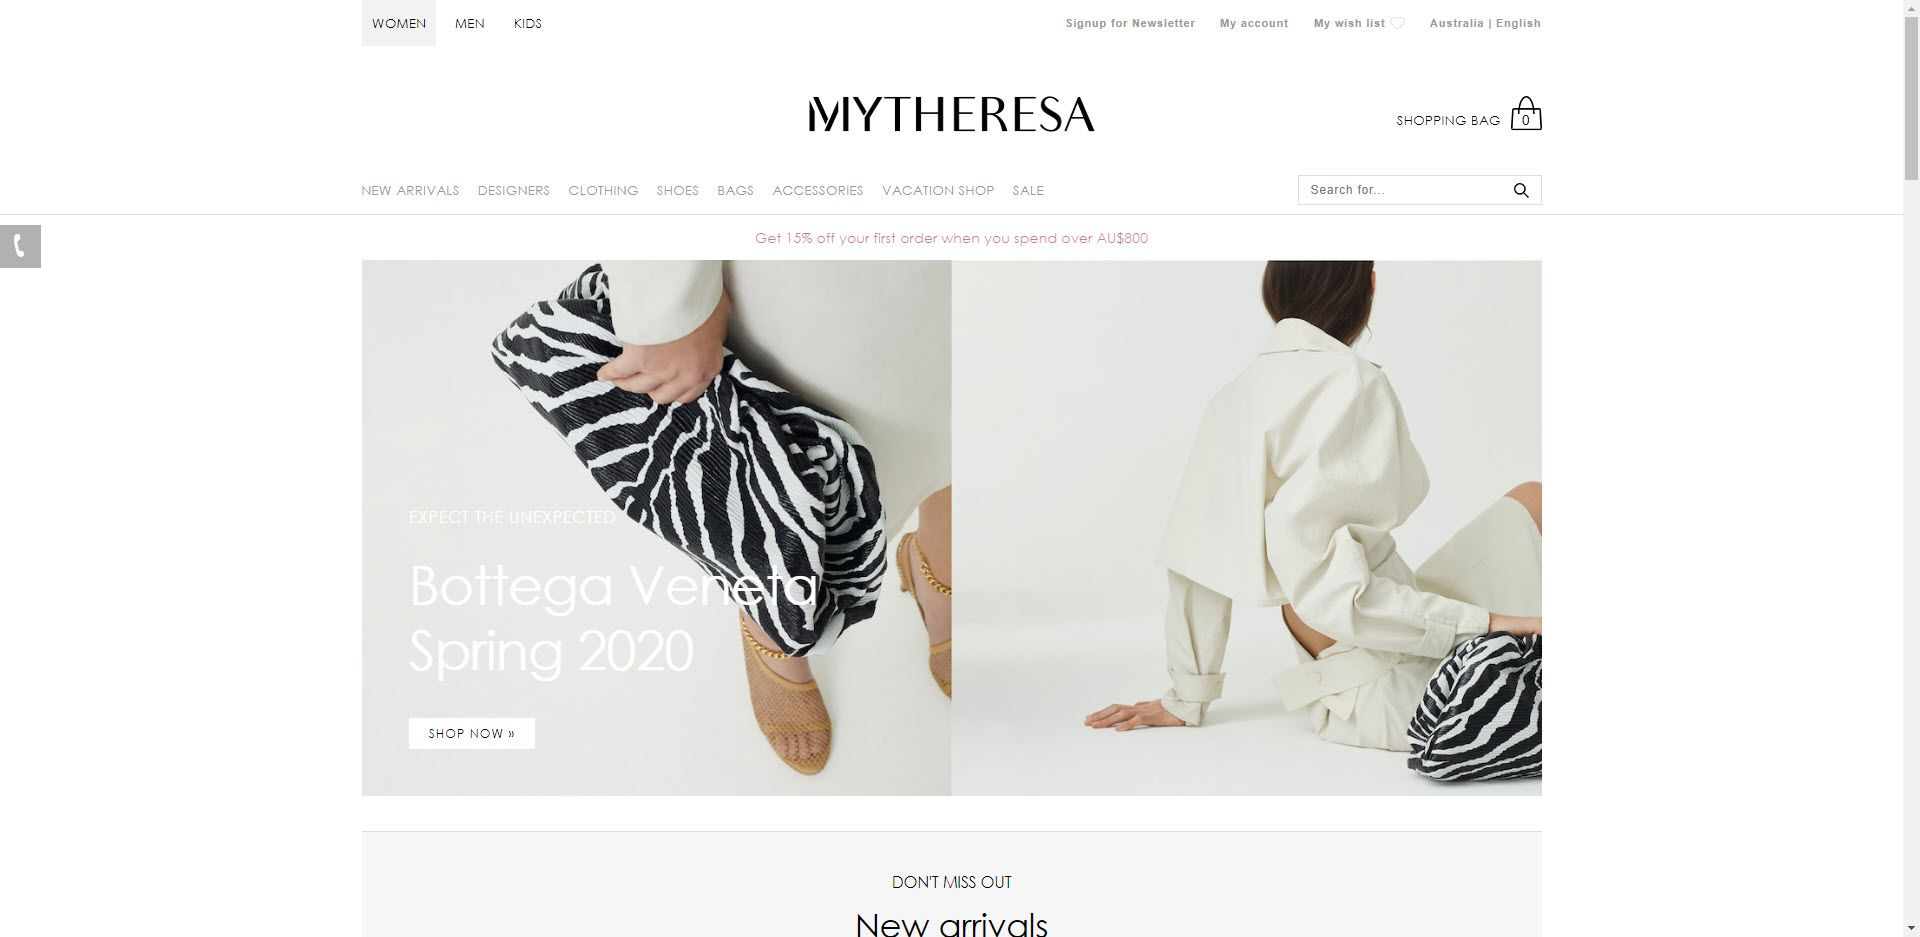 Fashion Designer Affiliate Programs - Mytheresa